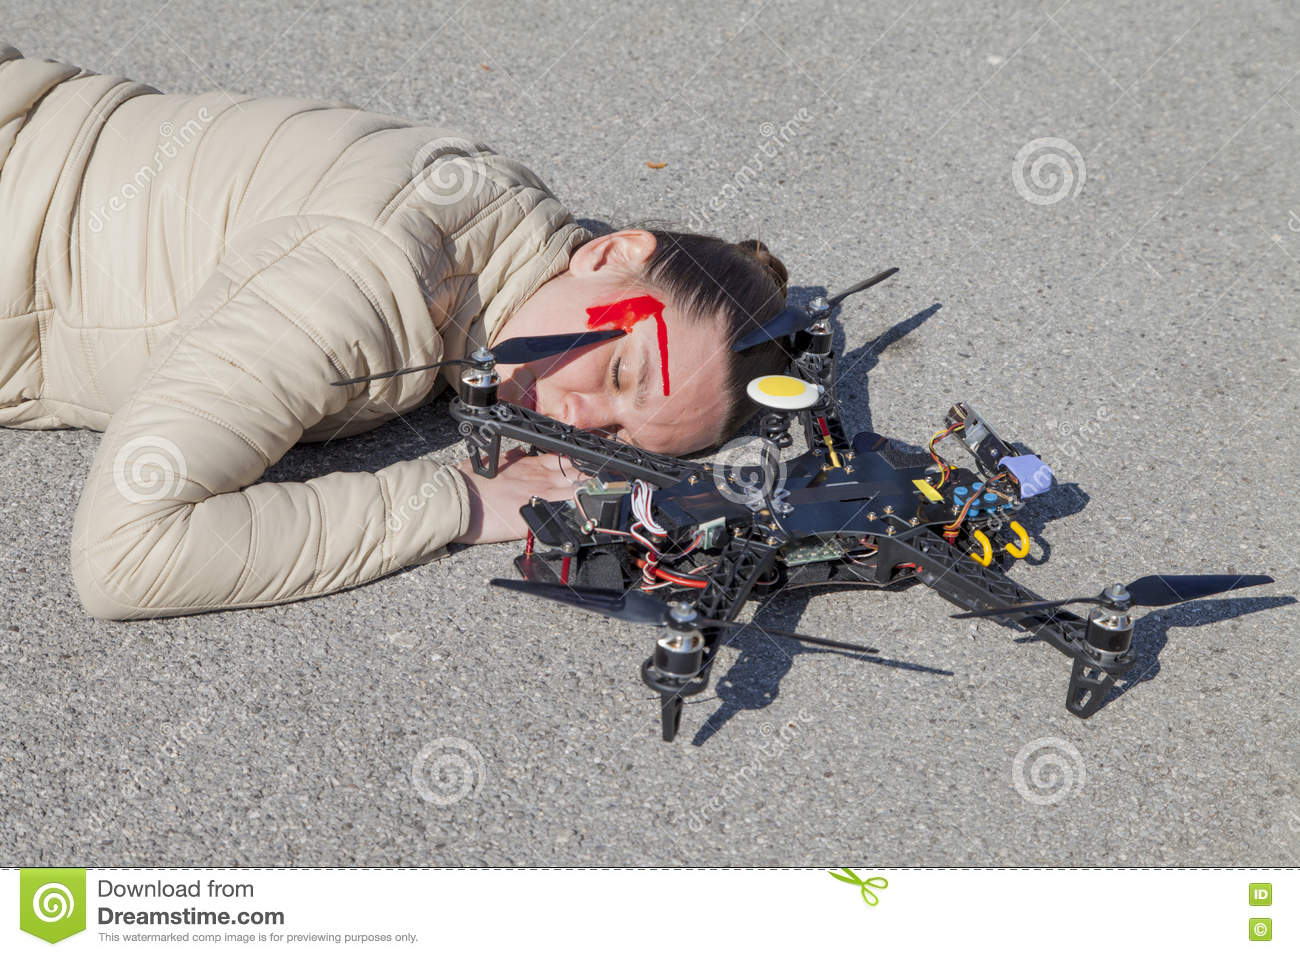 best quadcopter to buy with Drone Quadcopter Accident Scene City on Storm Racing Drone Review moreover Global Drone Gw009c 4 Channel Droni With Camera 6 Axis Mini Rc Helicopter Drone Con Camara Drone Professional Electronic Toys likewise Dji Inspire 1 Photo Drone Uav also Drone Training Uav Training also Drone Quadcopter Accident Scene City.